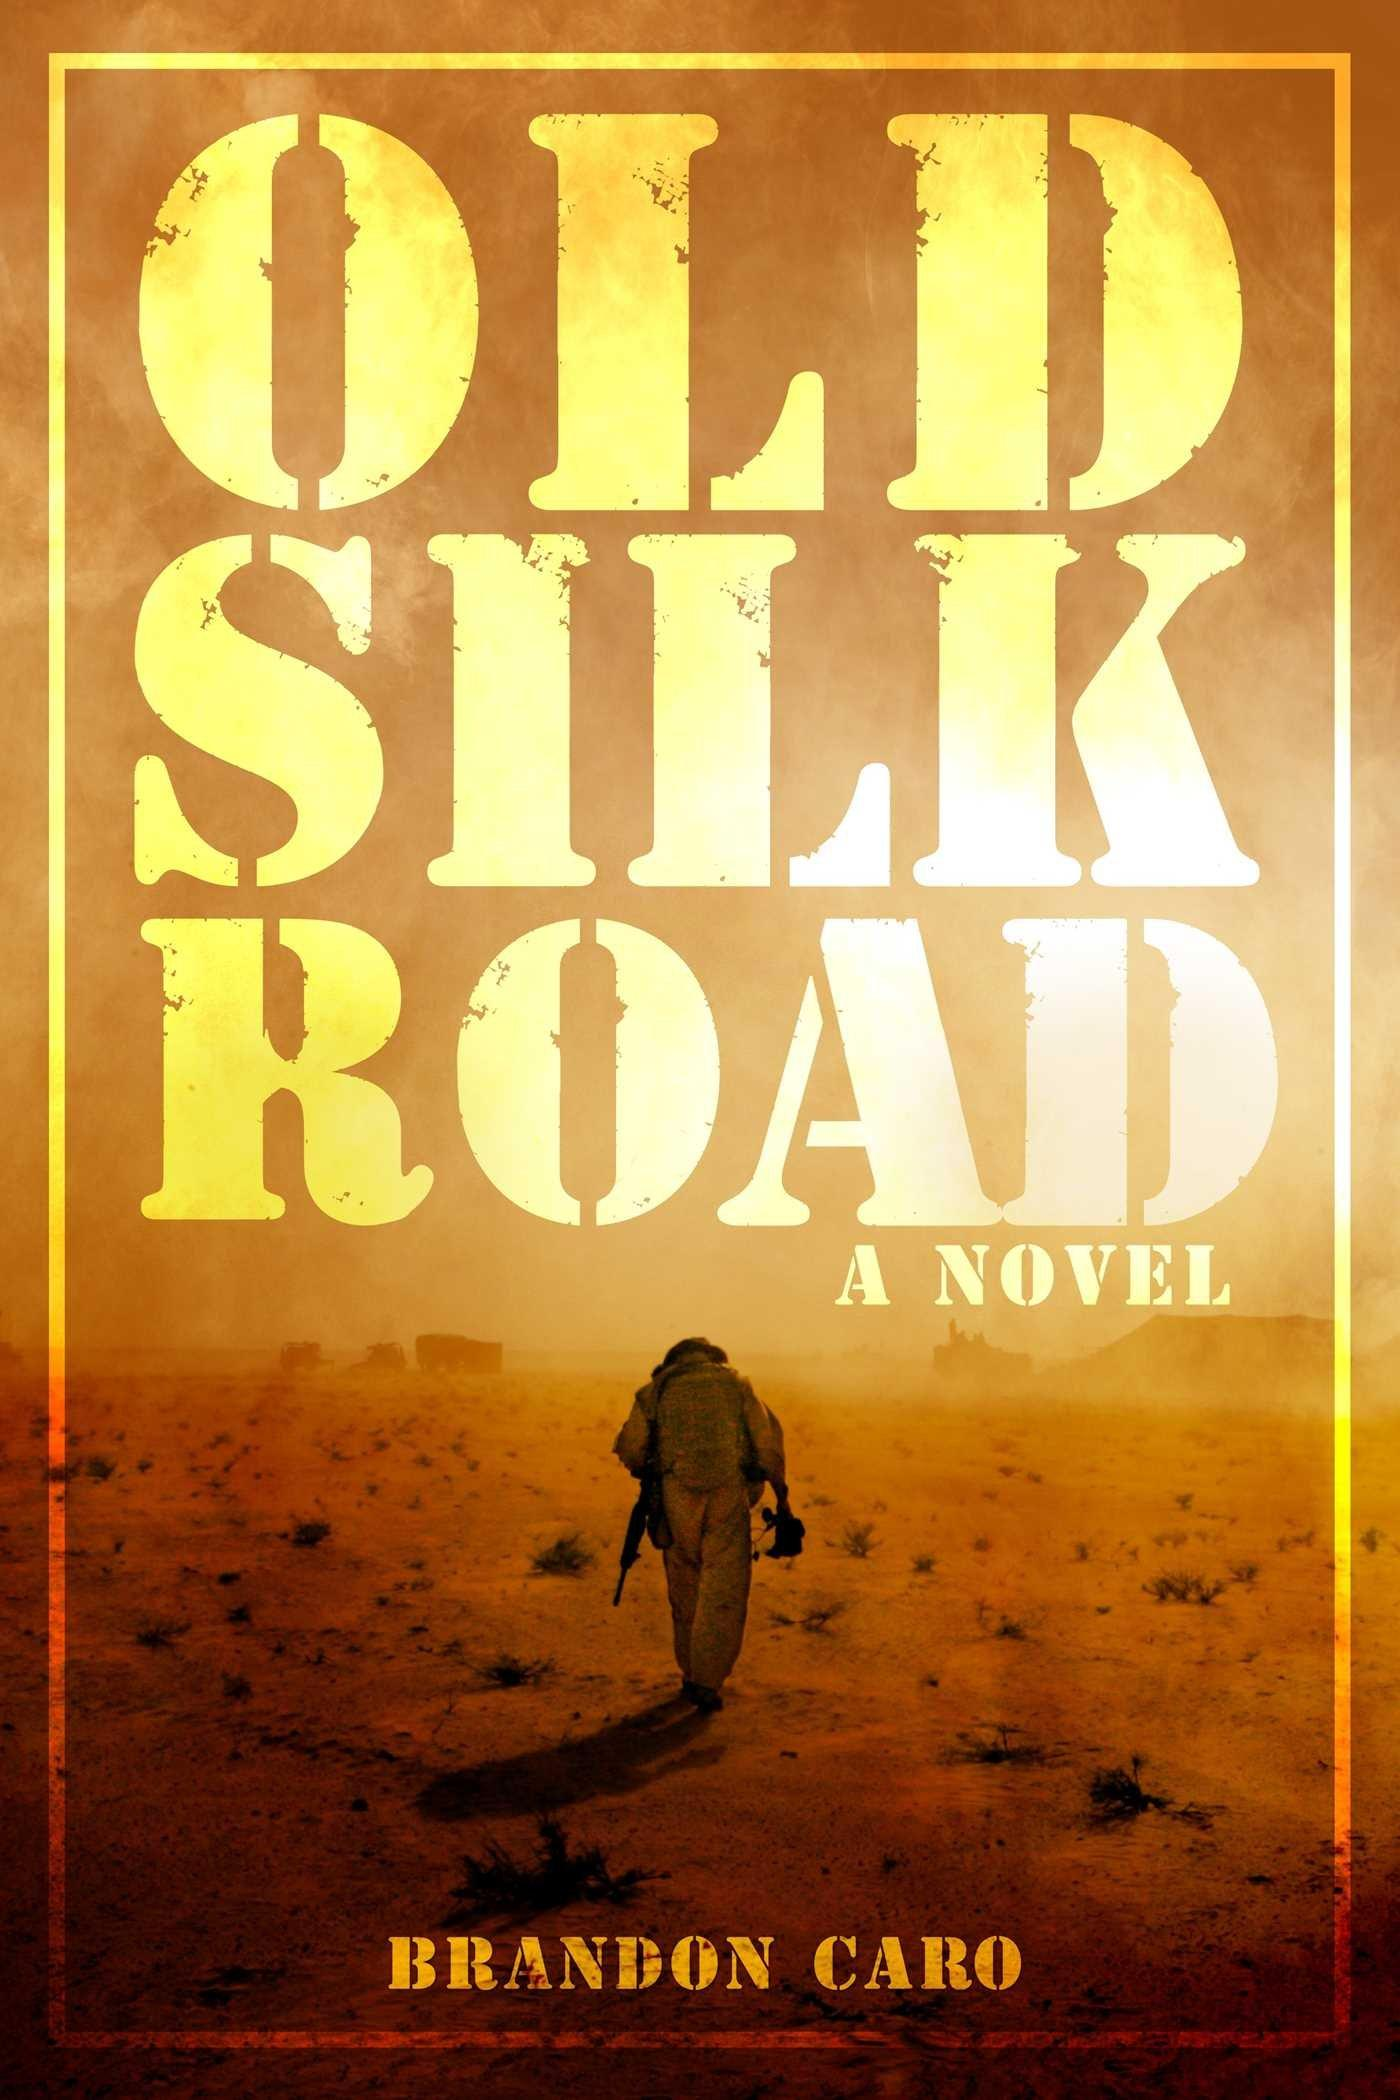 OFF Old Silk Road